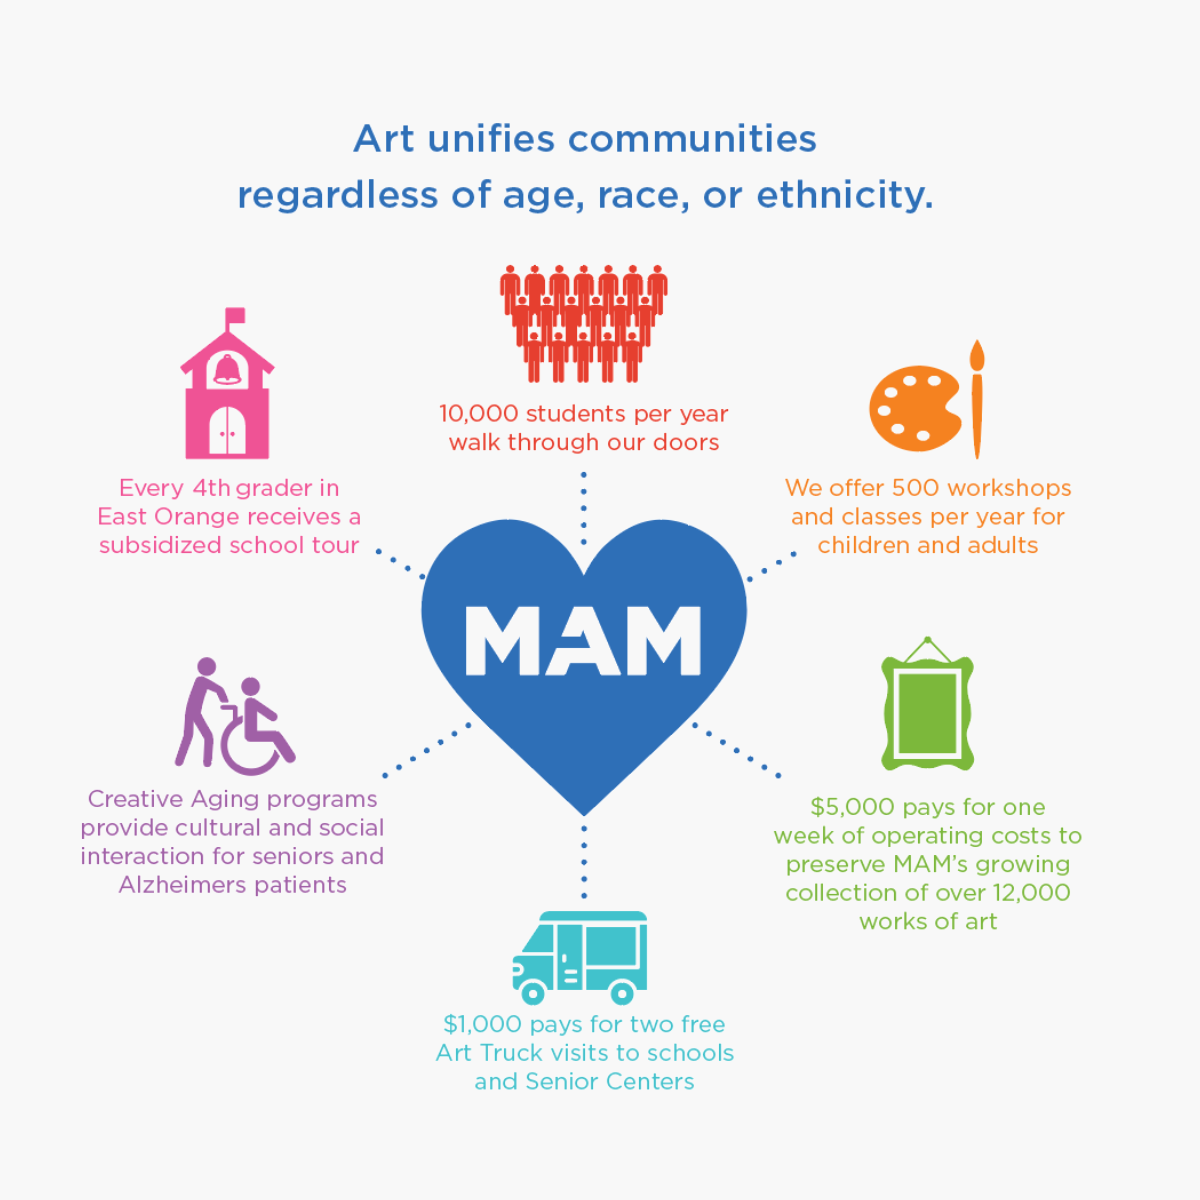 ways MAM helps the community